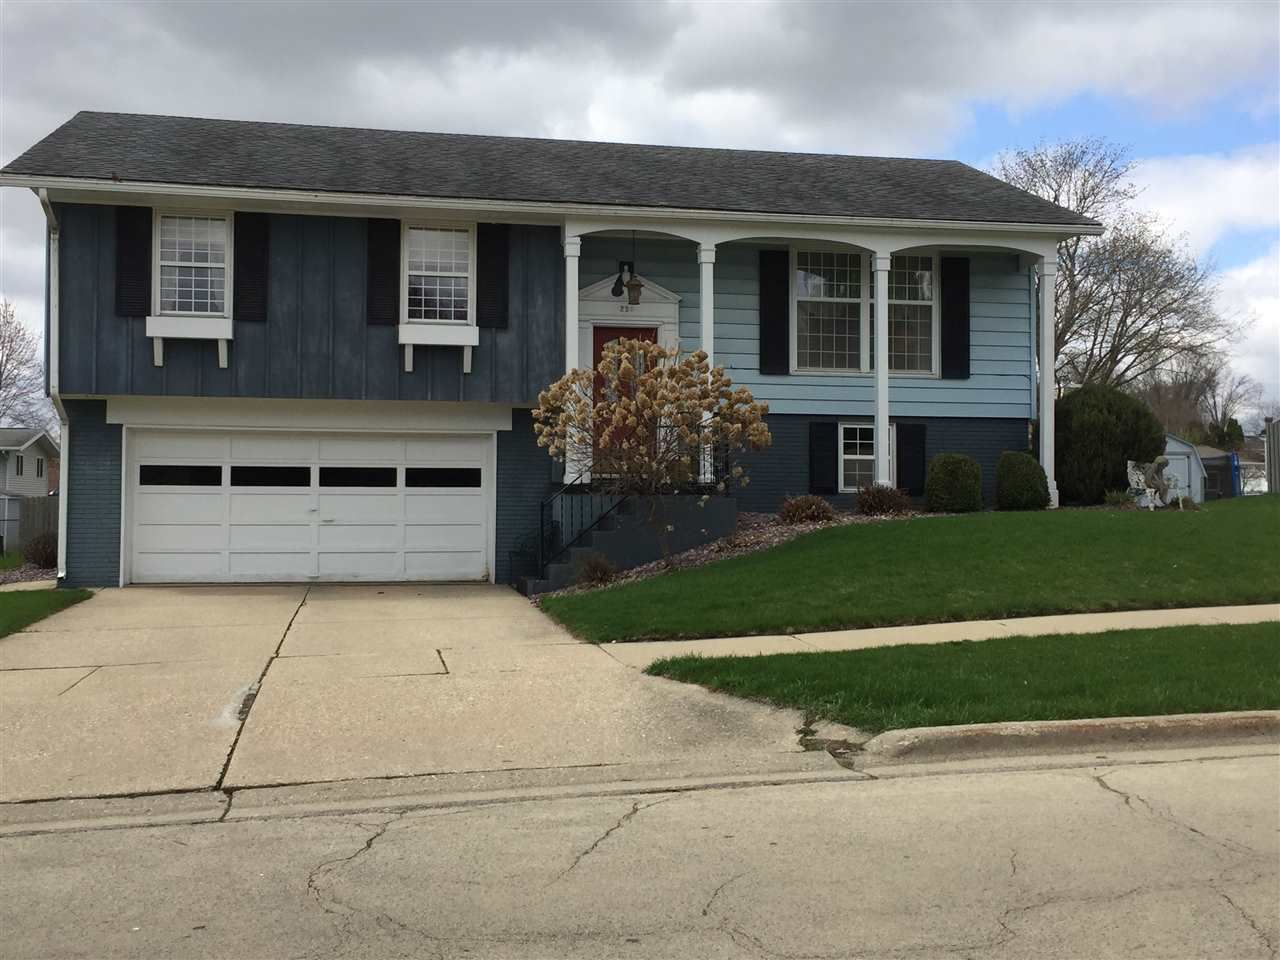 229 11th Ave, Monroe, WI 53566 - #: 1909007